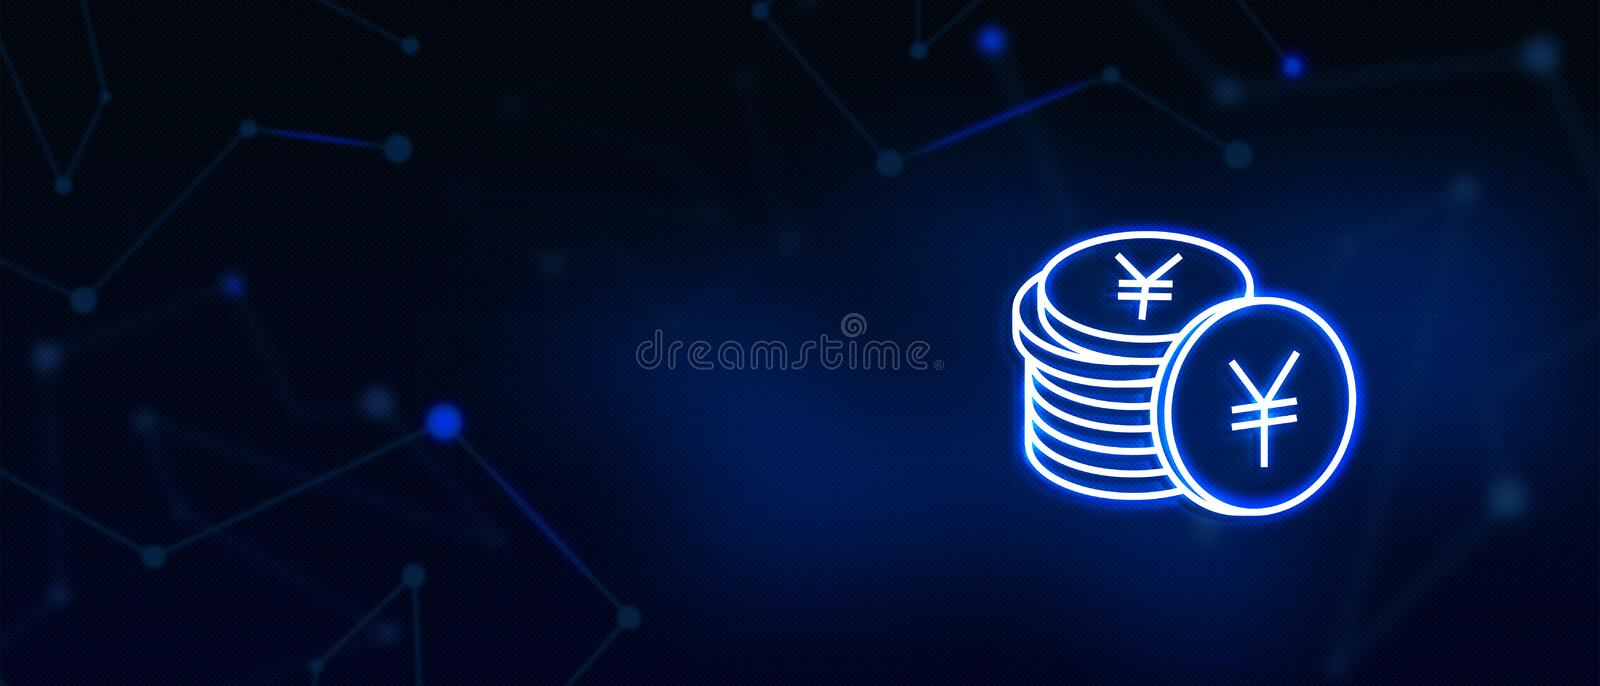 Yen Coins, Currency, Finance business, banking, Money, Dollar, Euro, Pound, Rupees, Bitcoin, Electronic currency, stock photo